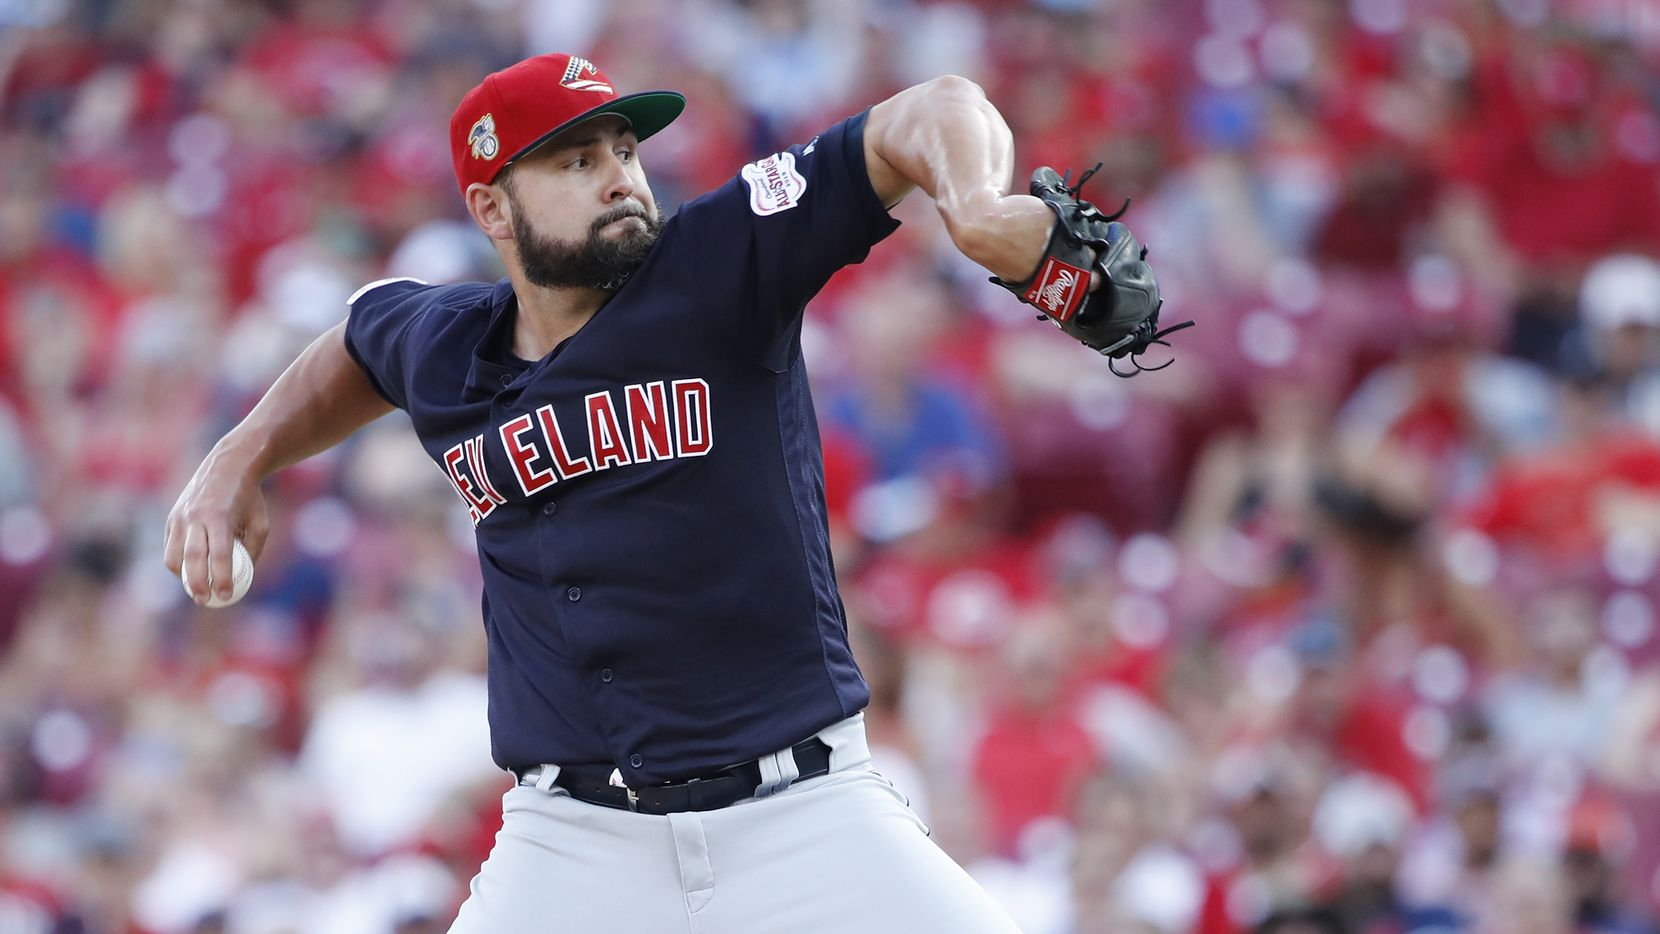 CINCINNATI, OH - JULY 06: Nick Goody #44 of the Cleveland Indians pitches in the ninth inning against the Cincinnati Reds at Great American Ball Park on July 6, 2019 in Cincinnati, Ohio. The Indians won 7-2. (Photo by Joe Robbins/Getty Images)